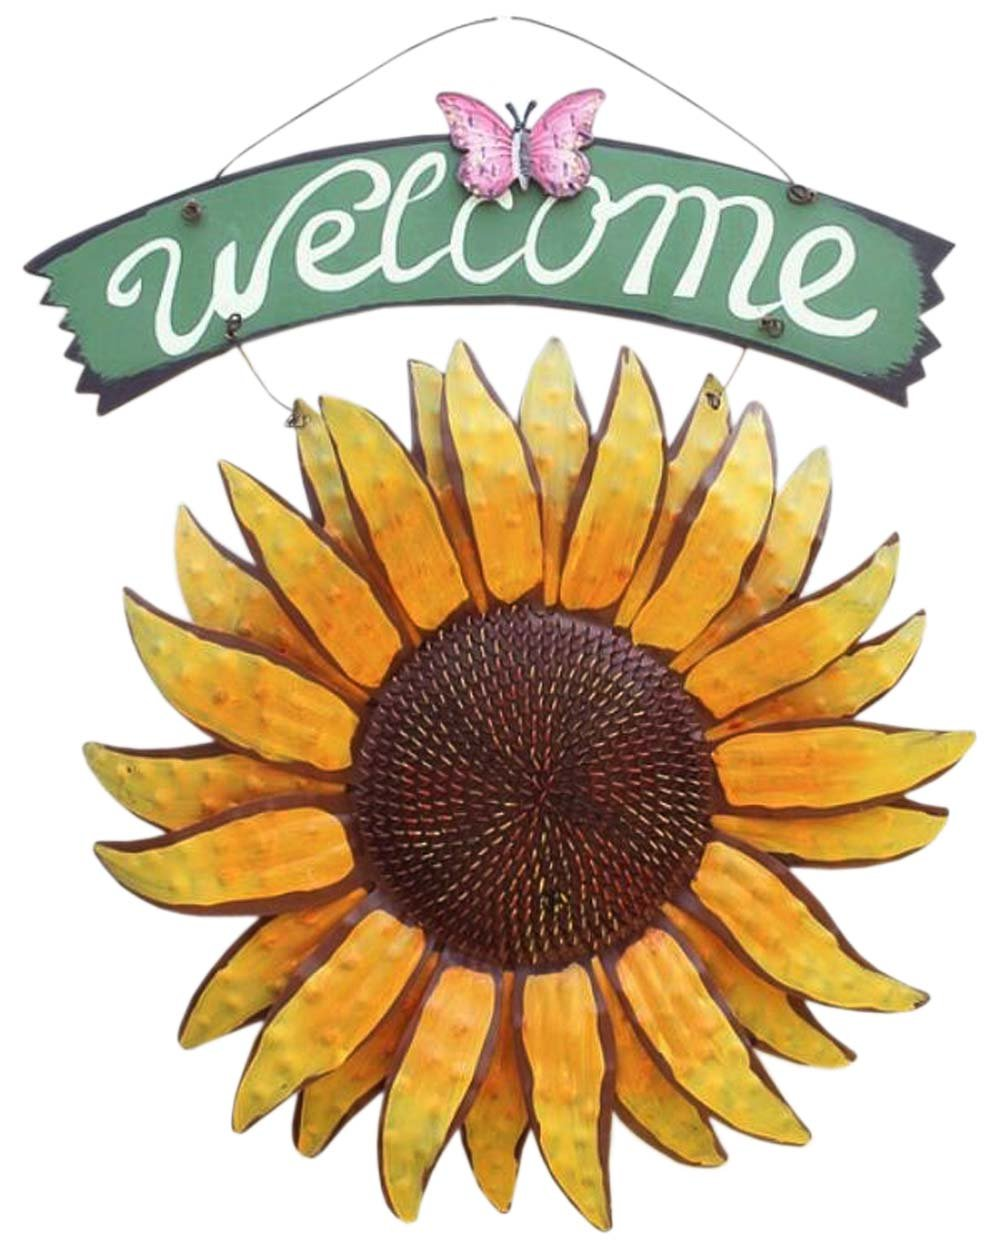 "QHZHANG 11.8' X 15"" Vintage Hanging Butterfly Sunflower Welcome Sign for Door Hanging (Sunflower)"